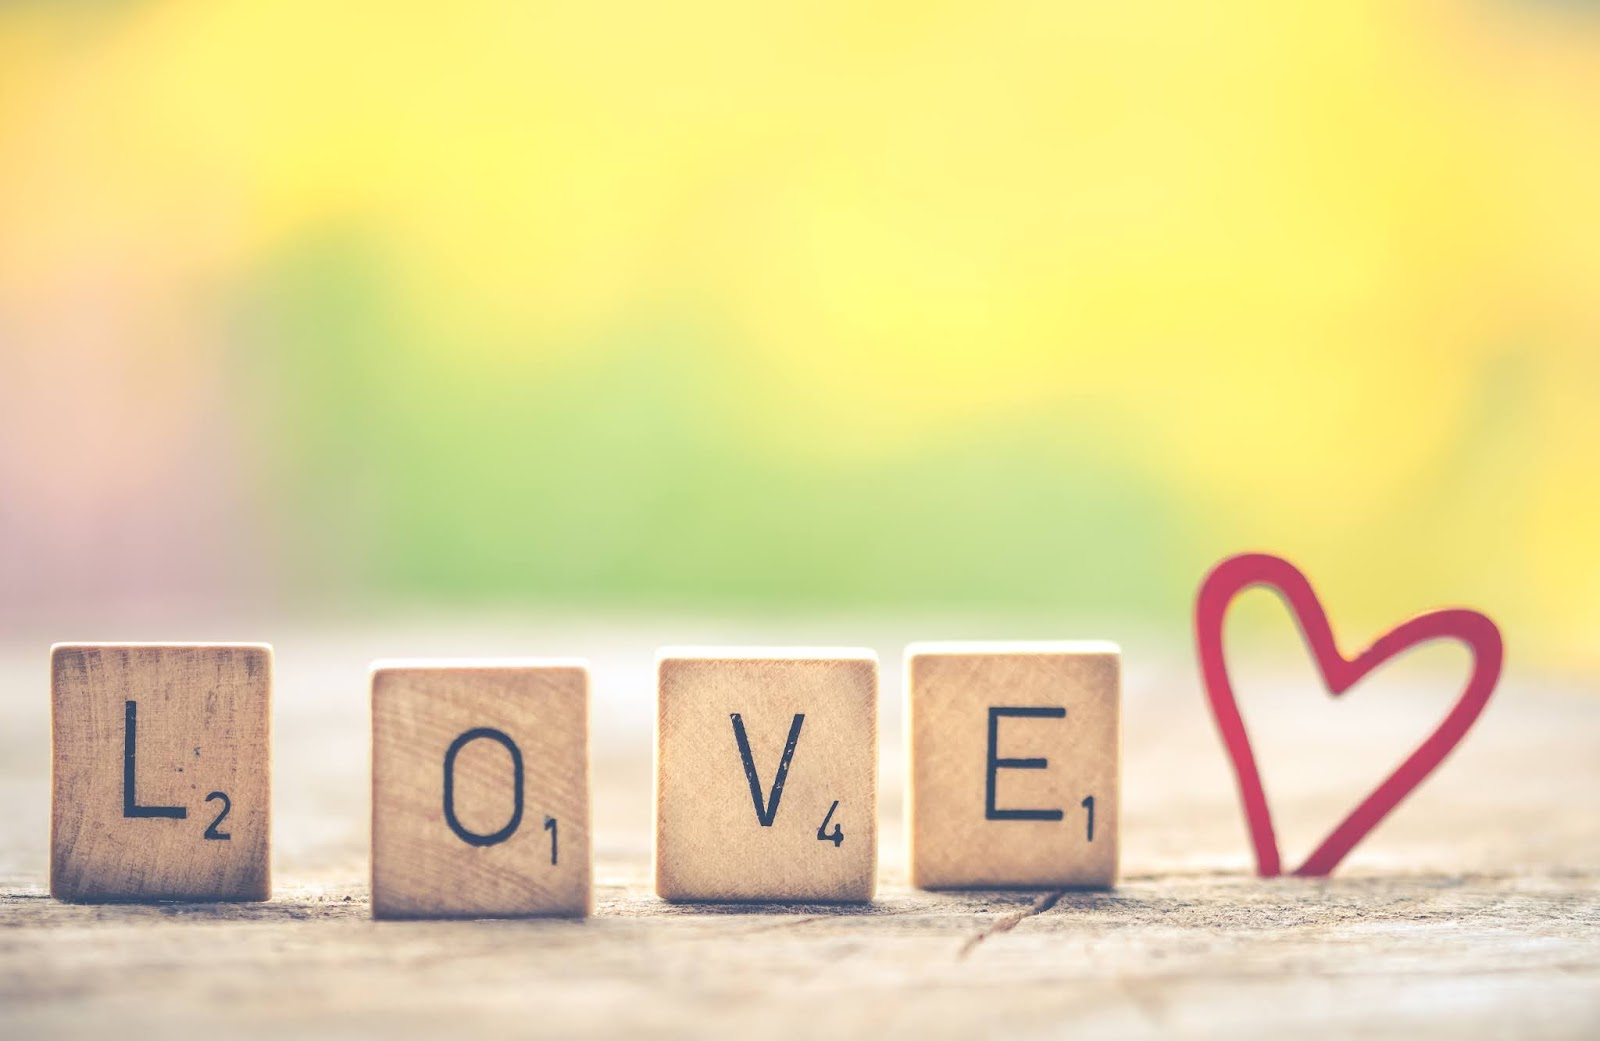 Photo of Scrabble Letter Tiles Forming the Word Love., love images